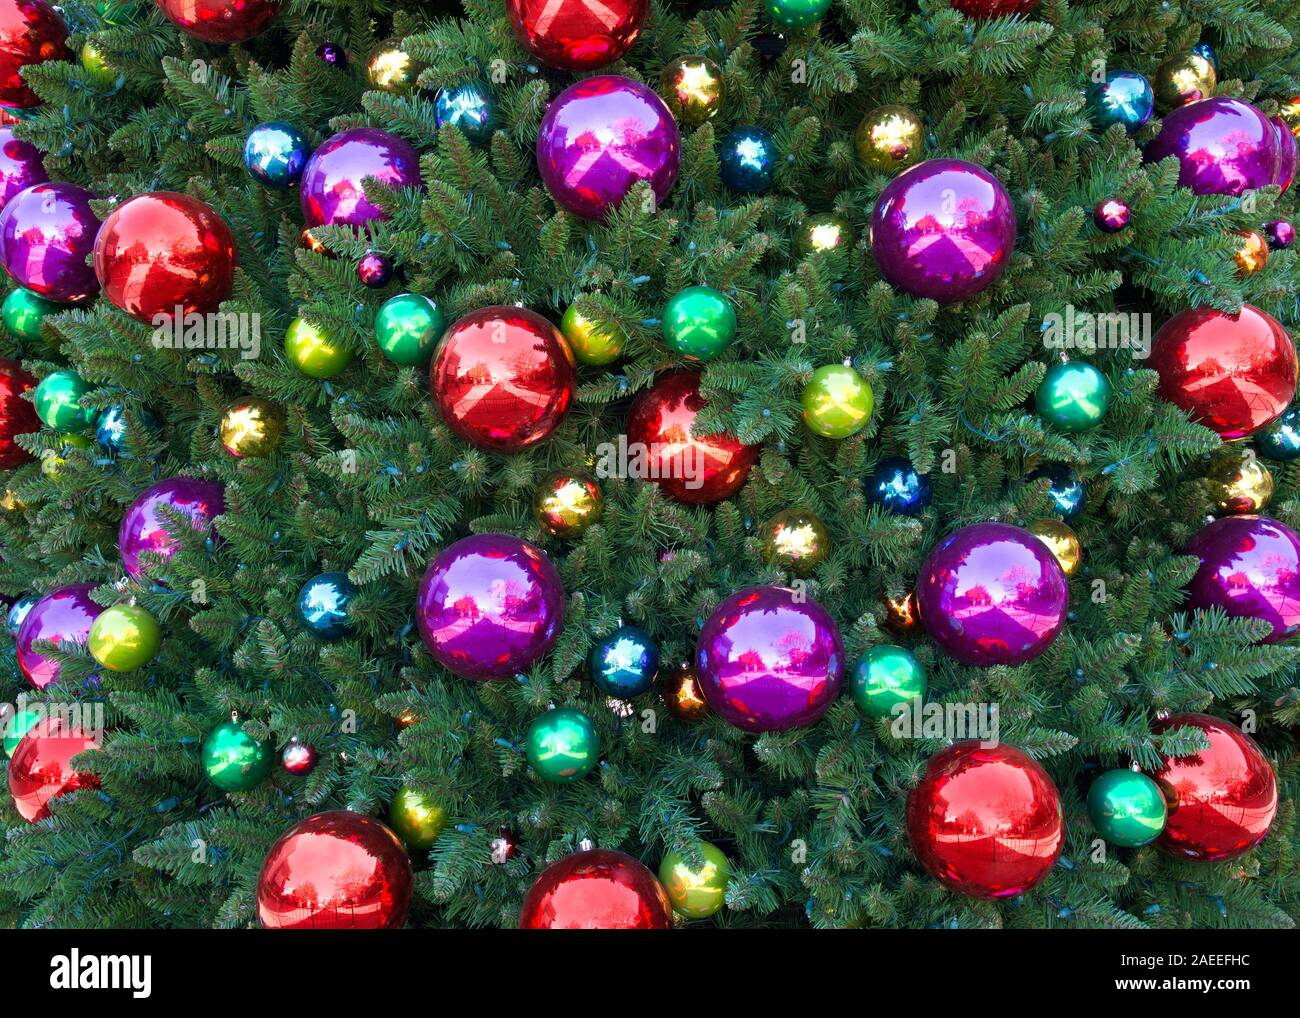 Close Up On Large Christmas Tree With Reflective Ball Ornaments Red Green Gold Purple Festive Holiday Lights Stock Photo Alamy